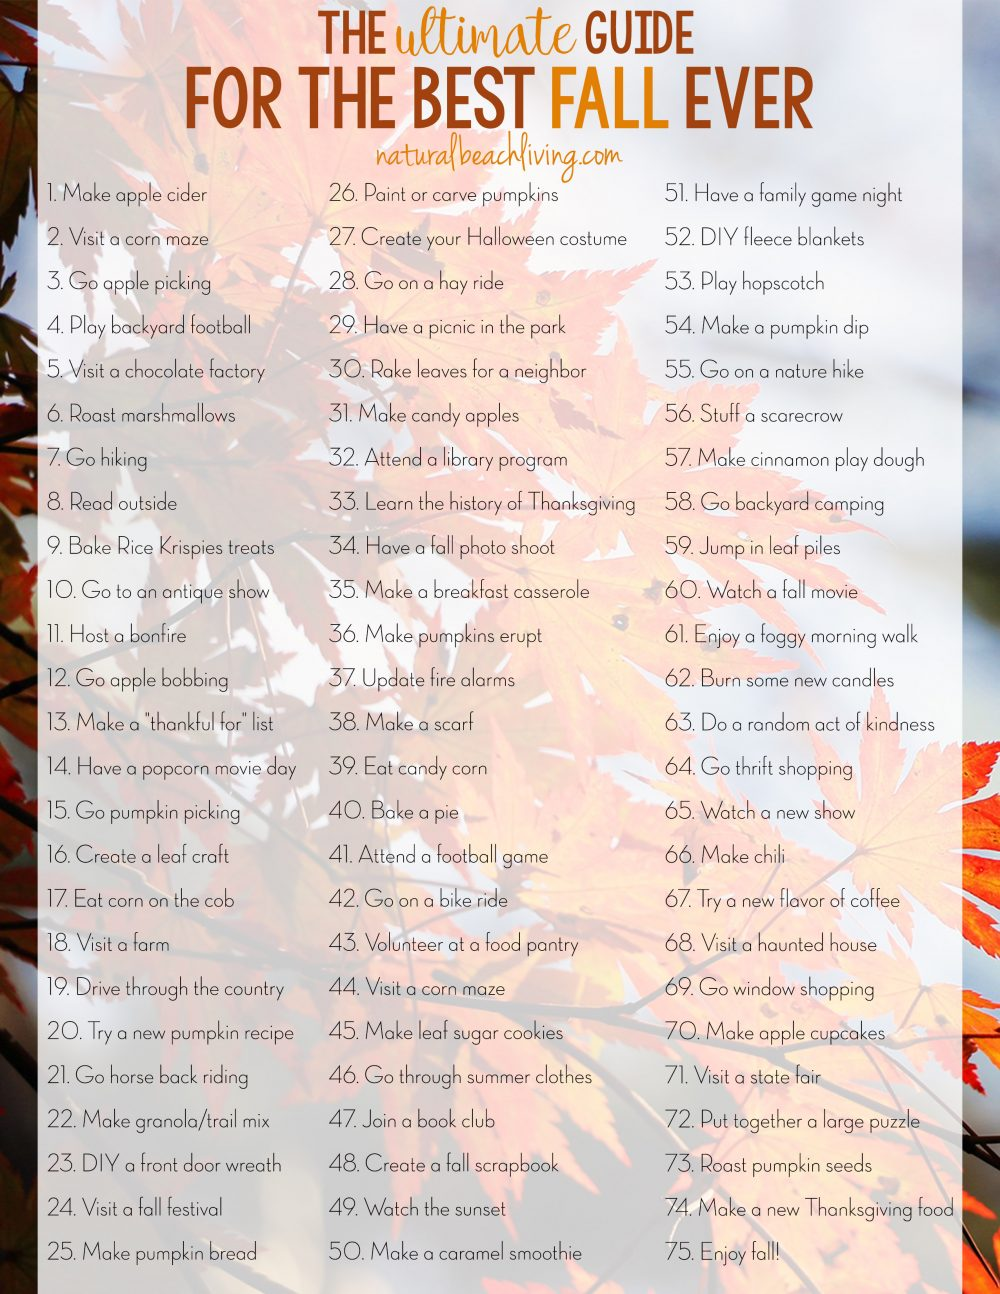 The Ultimate Guide for the Best Fall Ever – Fall Bucket List Printable